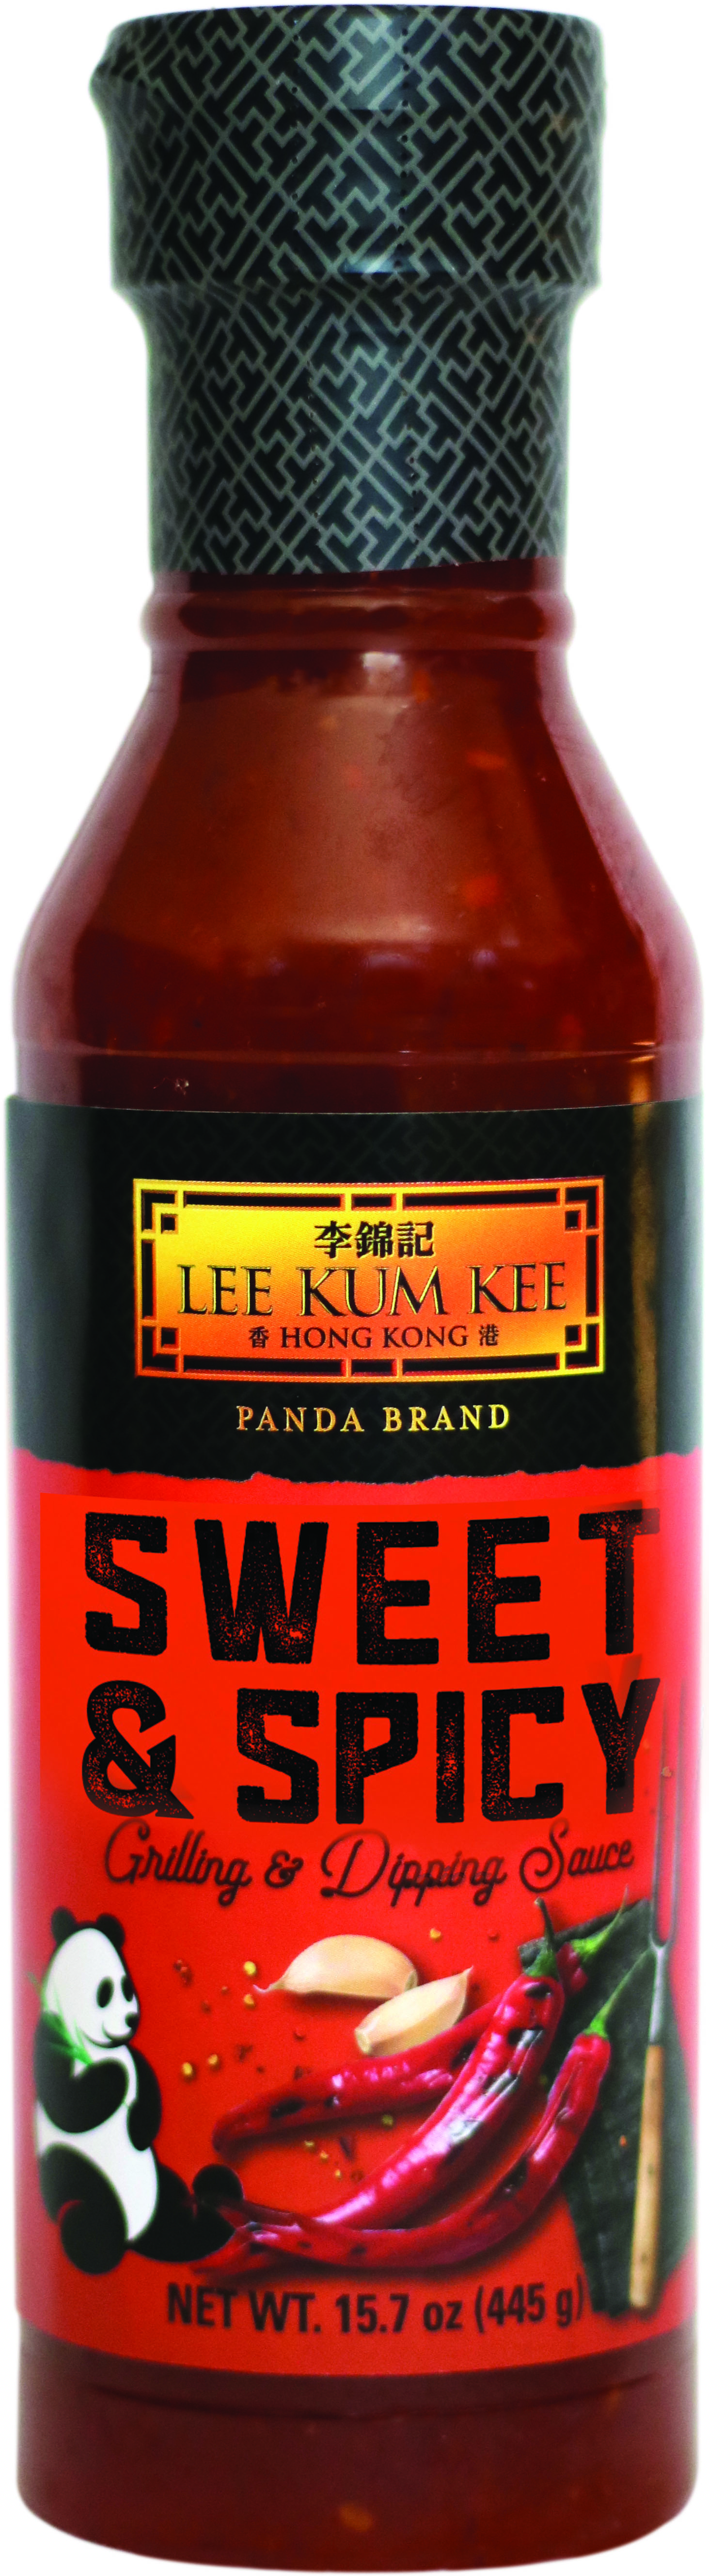 Panda Brand Sweet & Spicy Grilling & Dipping Sauce - 15.7 oz